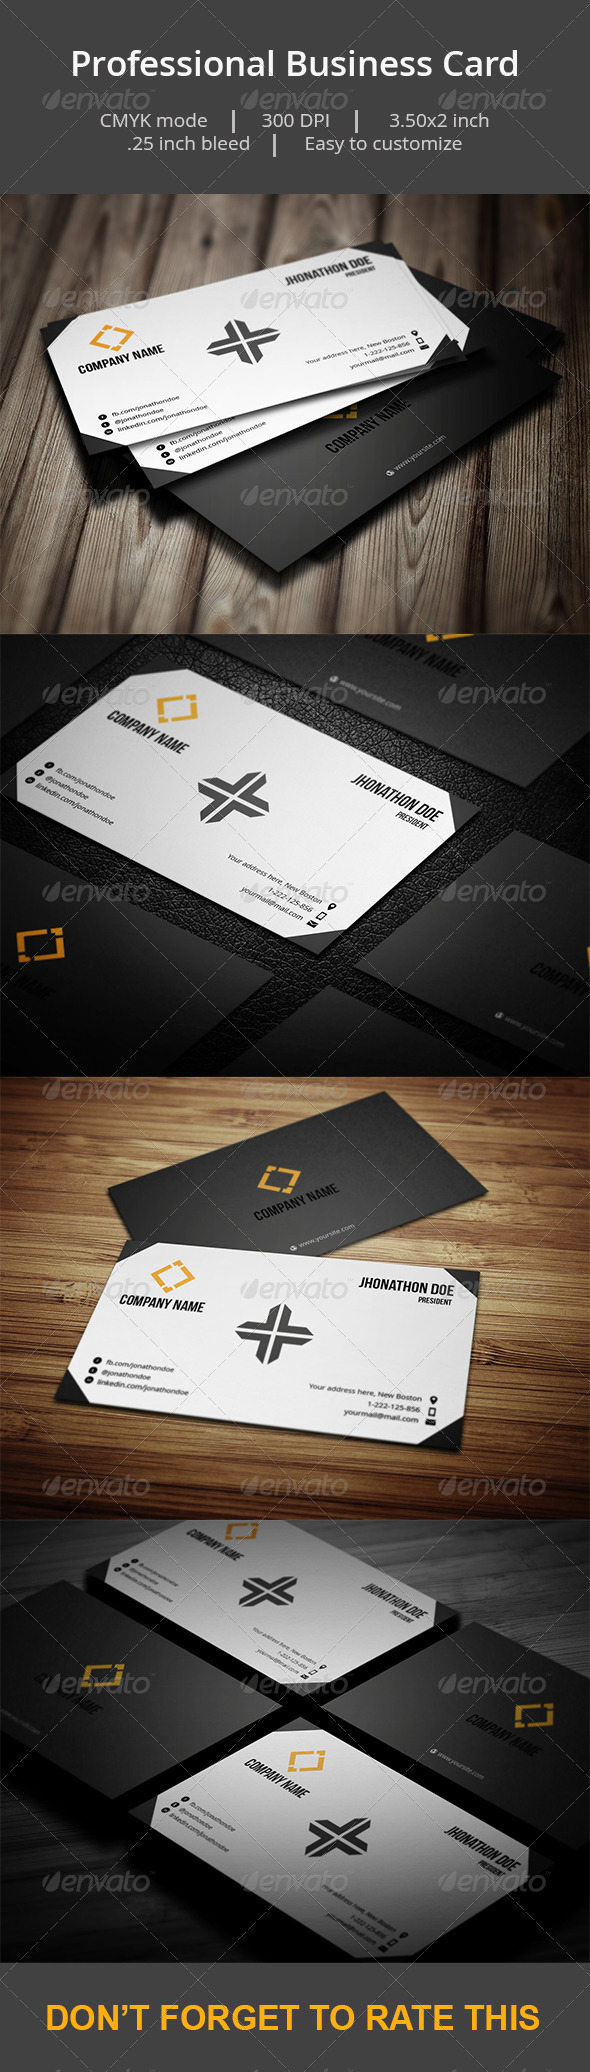 GraphicRiver Professional Business card 6951771